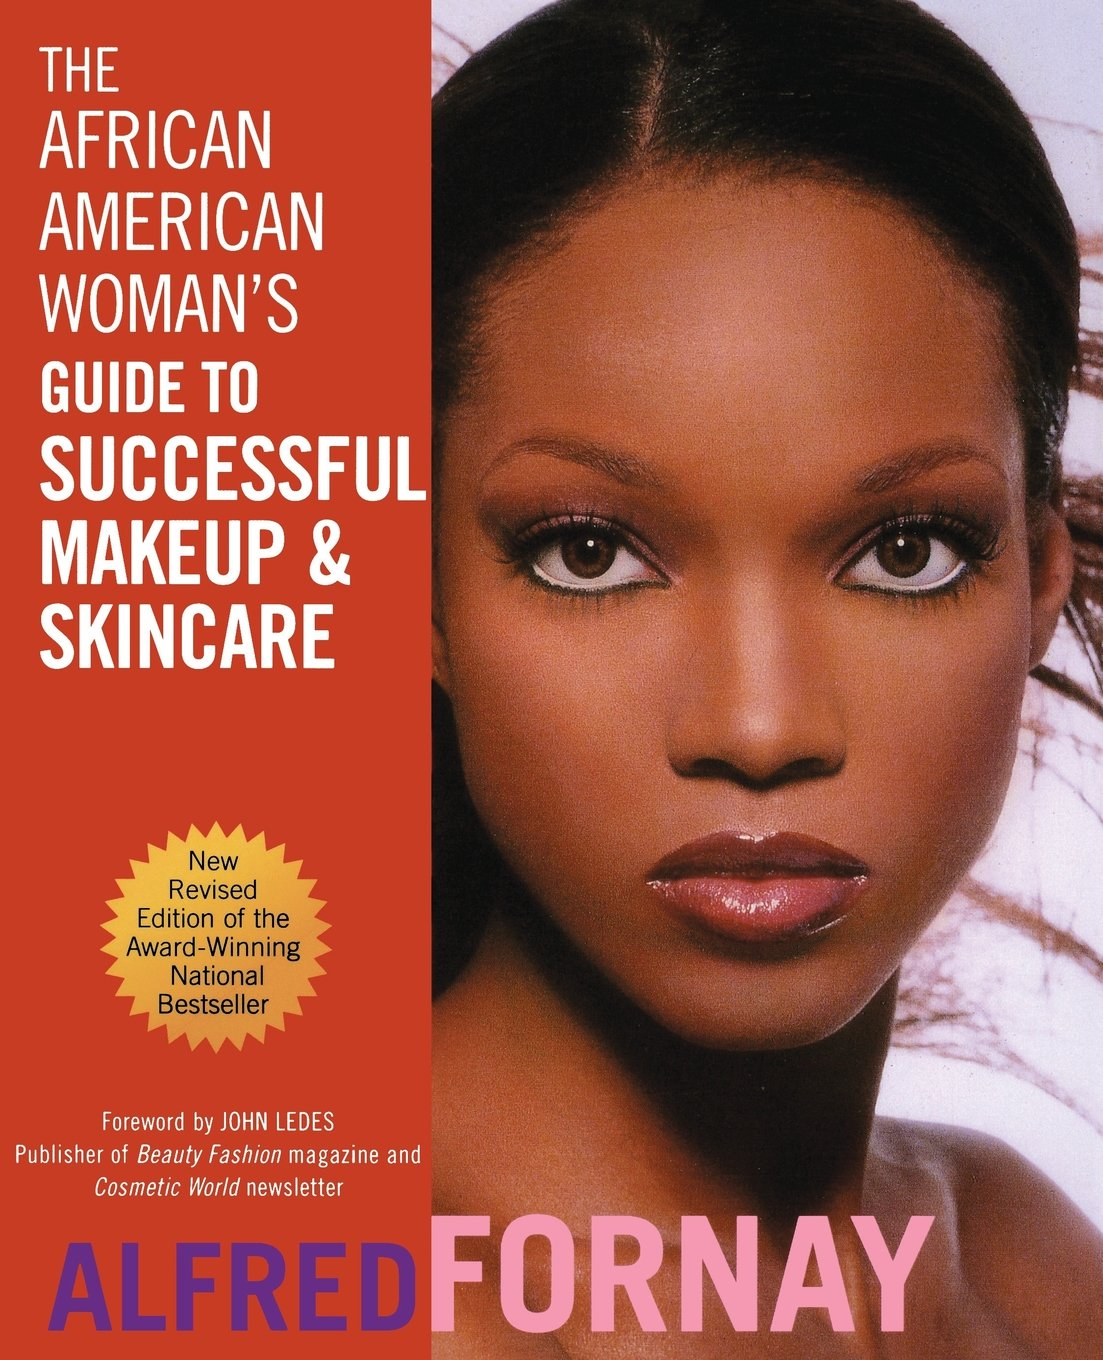 Discussion on this topic: Grooming tips for dark complexion females, grooming-tips-for-dark-complexion-females/